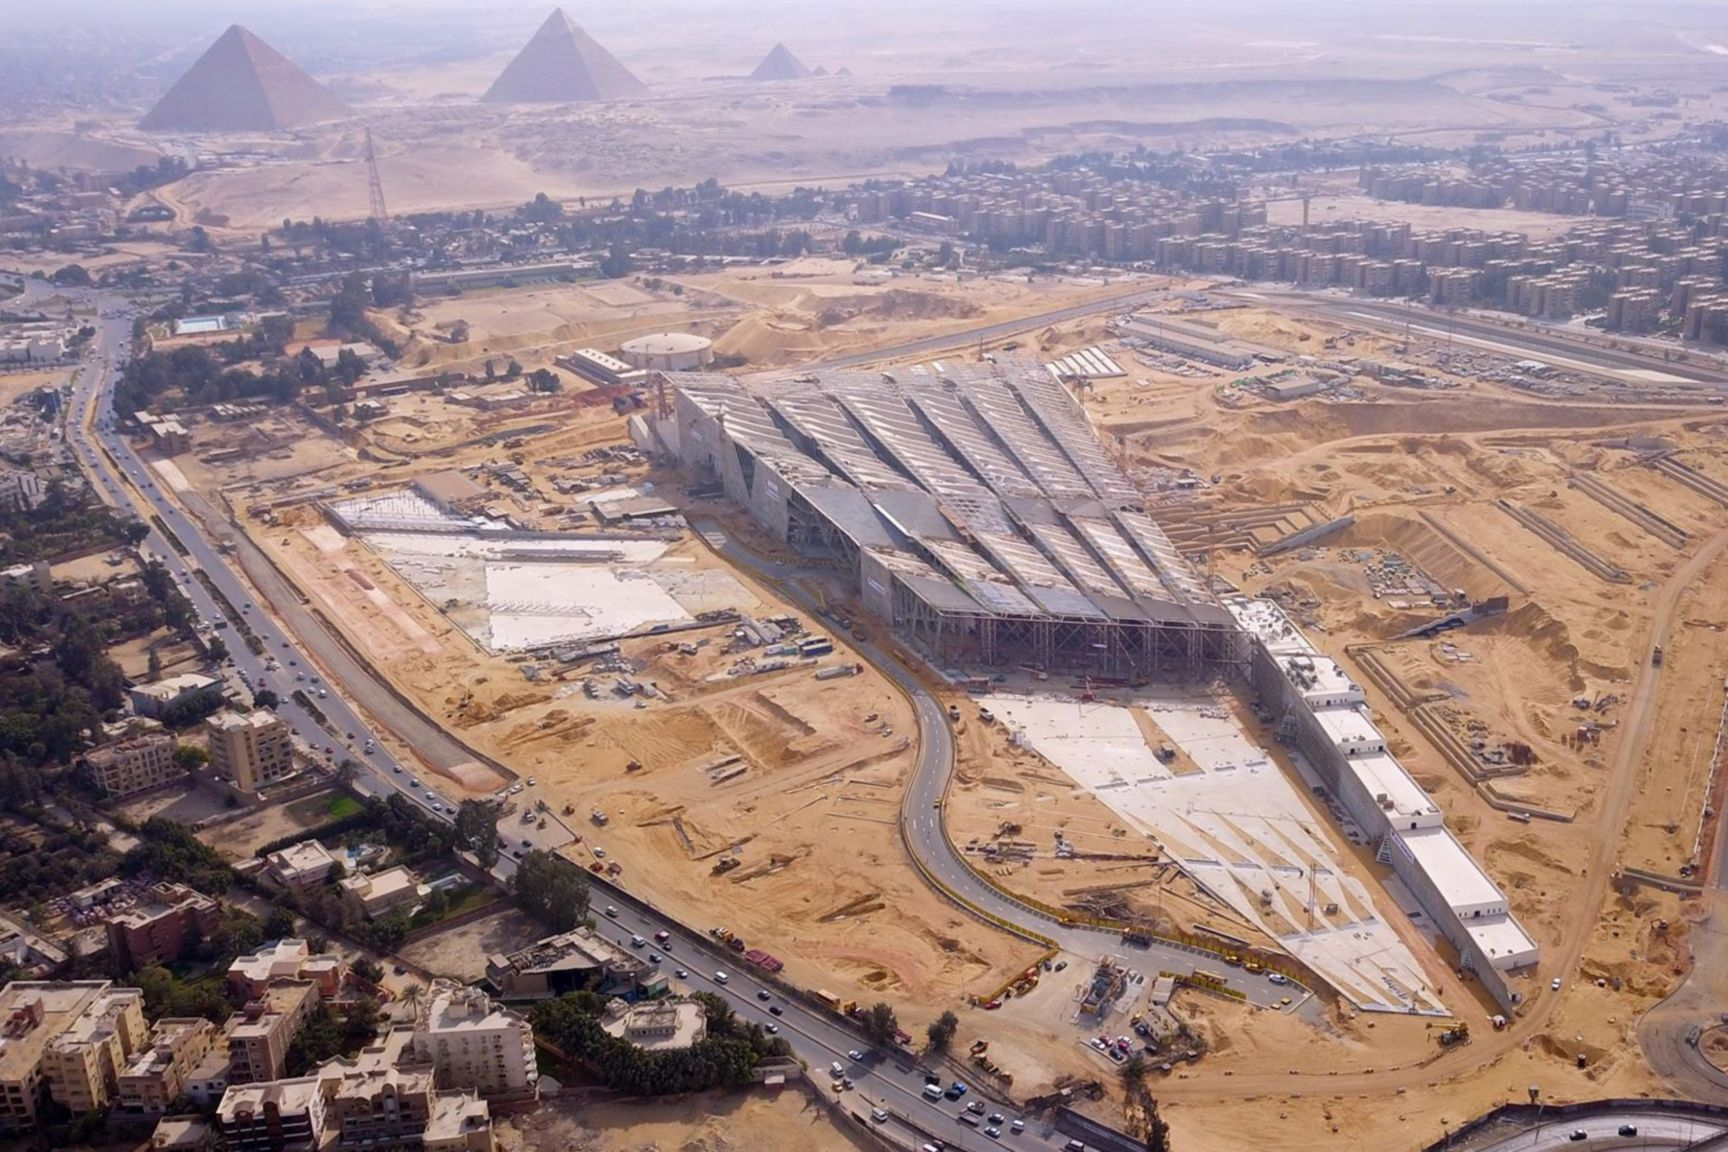 Aerial view of construction of Grand Egyptian Museum in Giza, Egypt